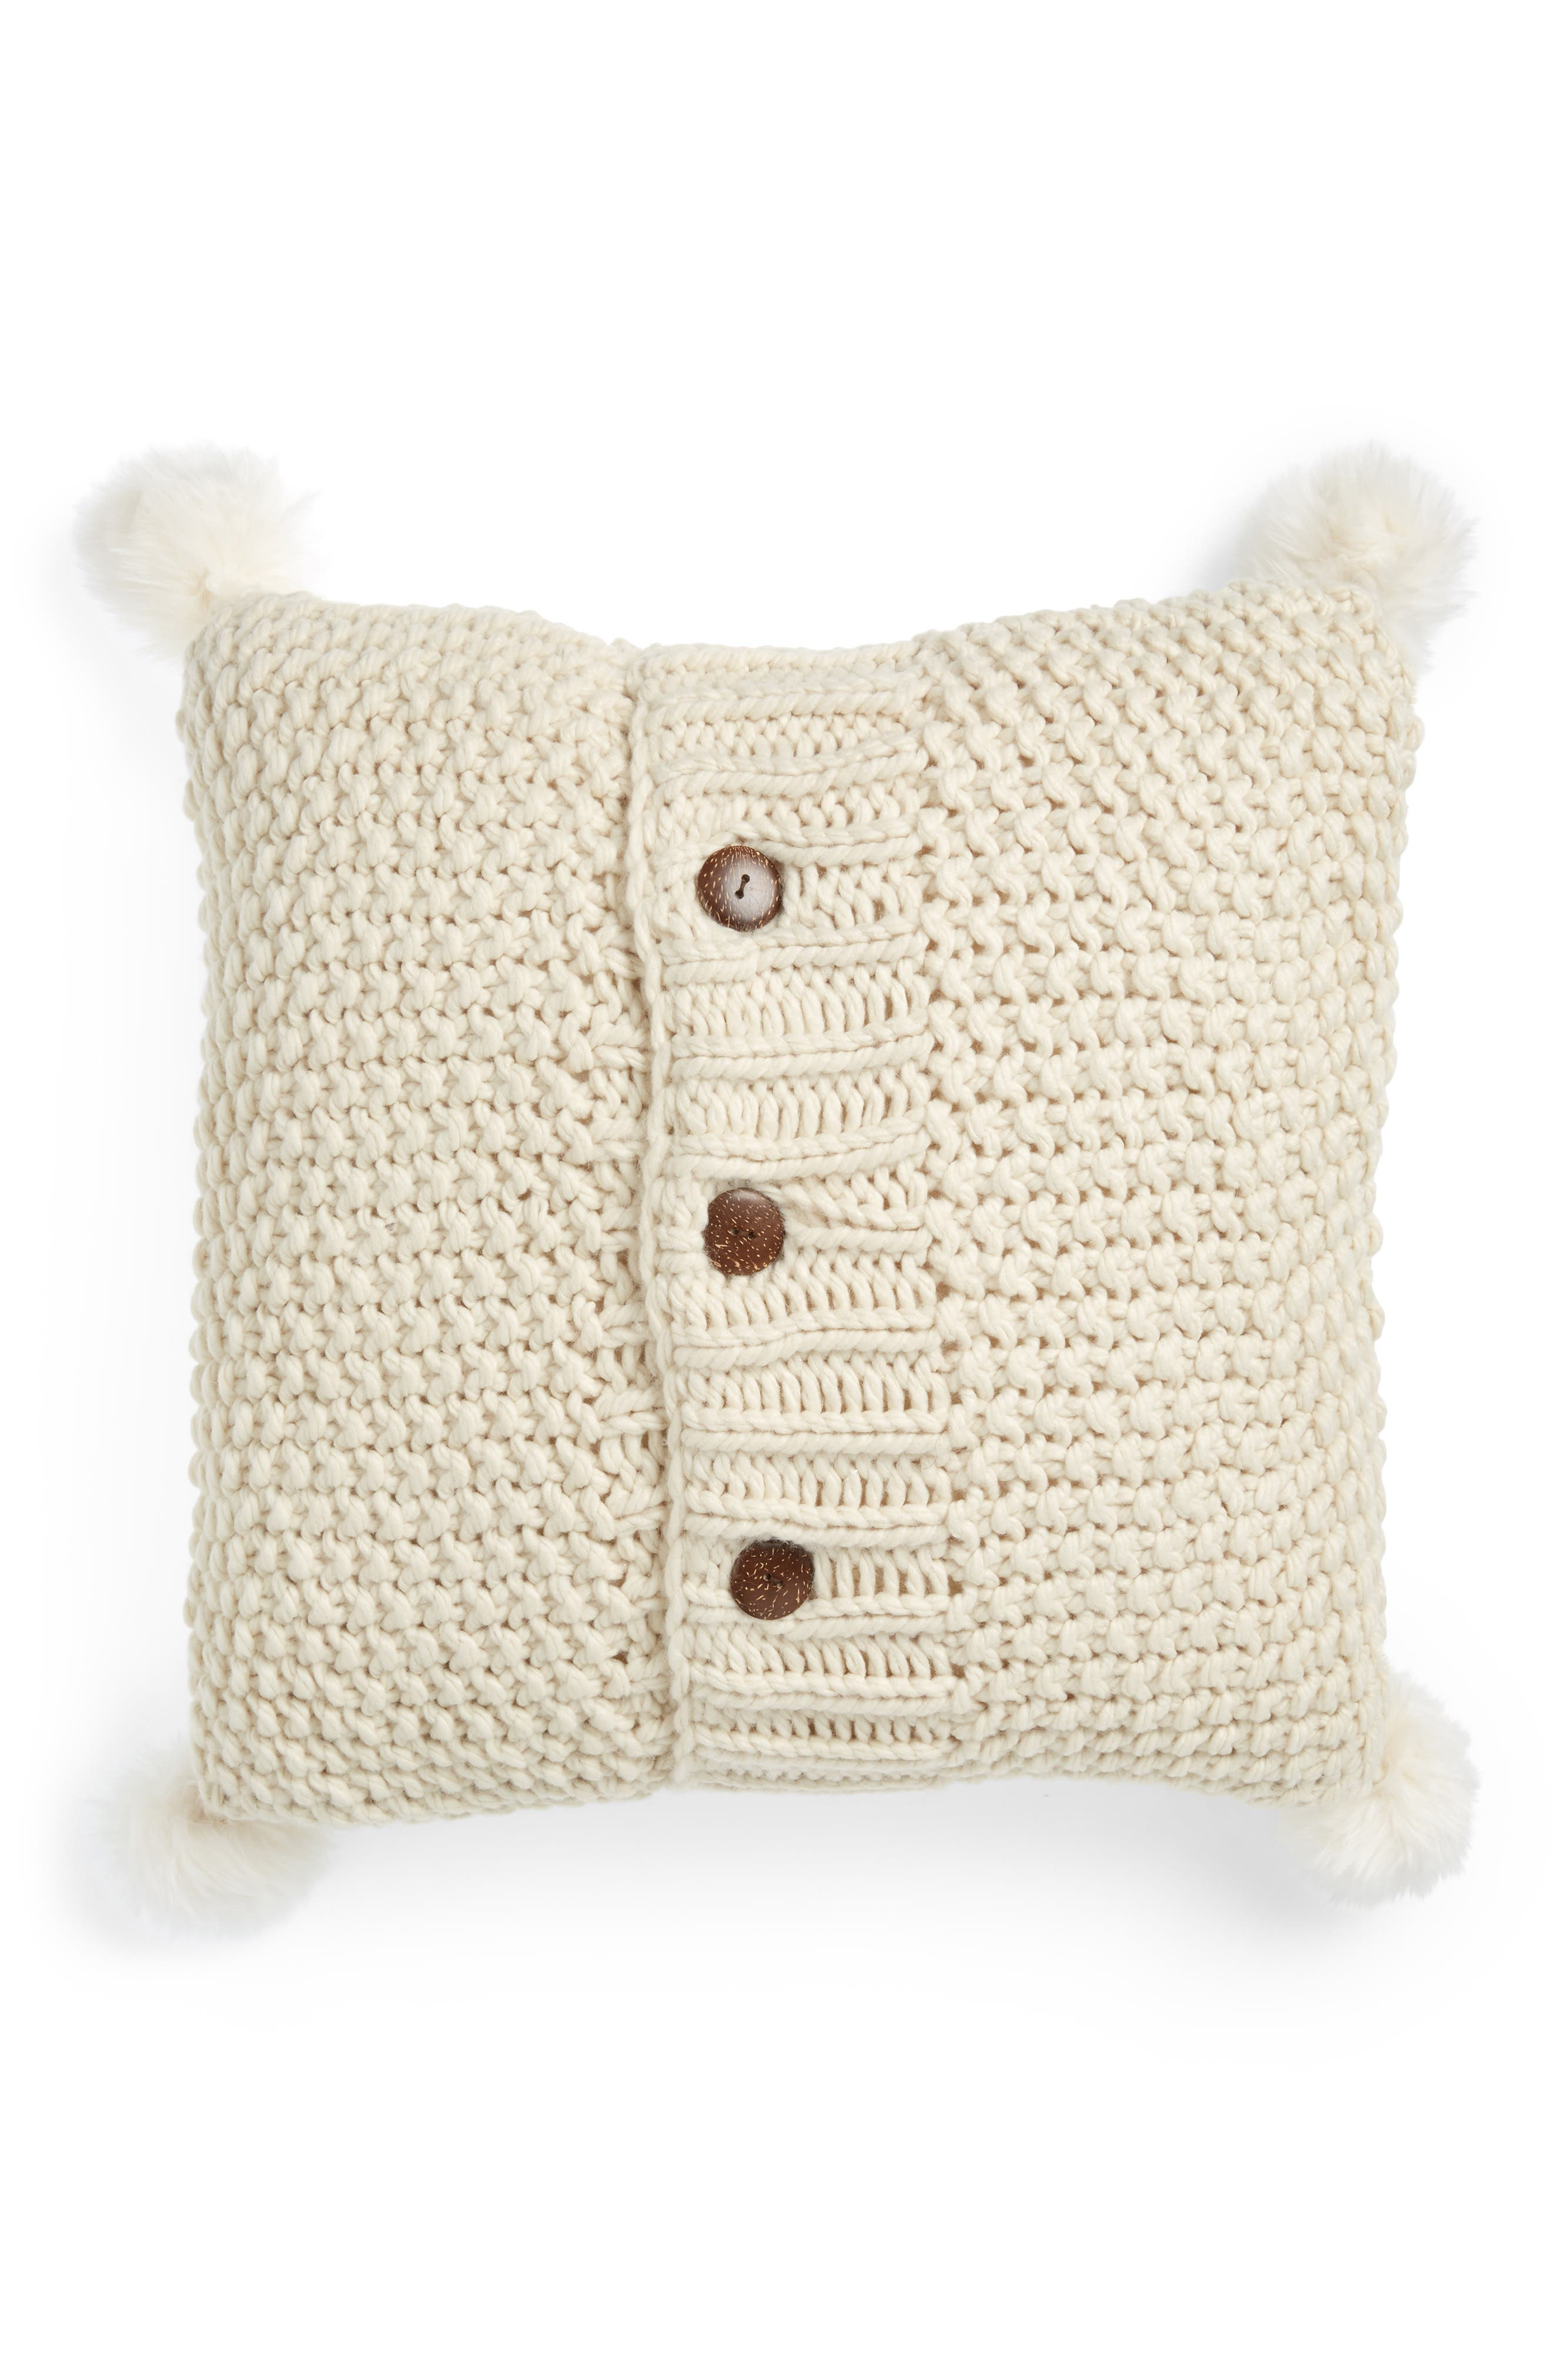 Knit Accent Pillow with Faux Fur Poms,                         Main,                         color, IVORY